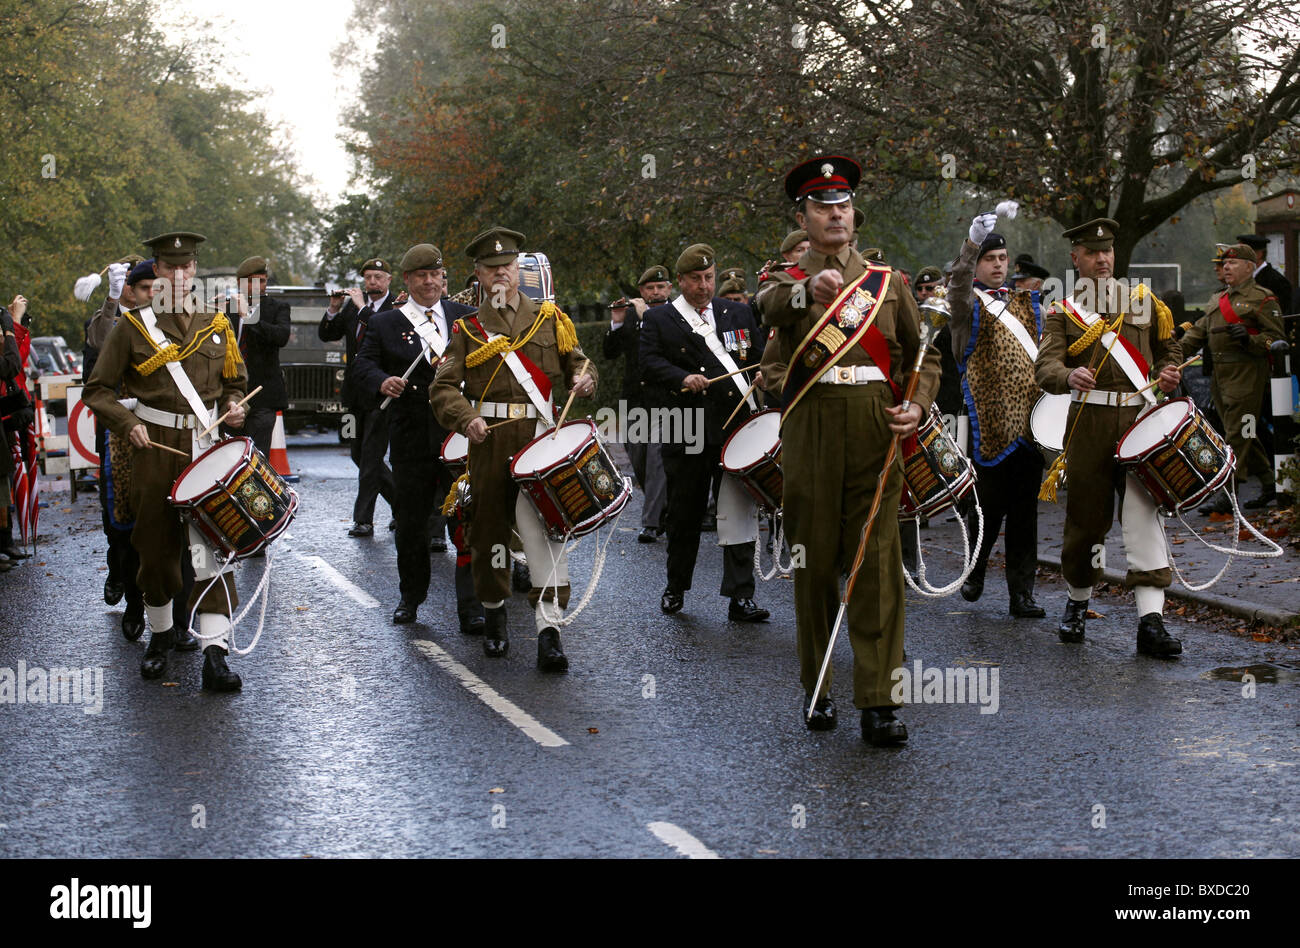 BRITISH ARMY MARCHING BAND PICKERING YORKSHIRE PICKERING NORTH YORKSHIRE PICKERING NORTH YORKSHIRE 16 October 2010 - Stock Image